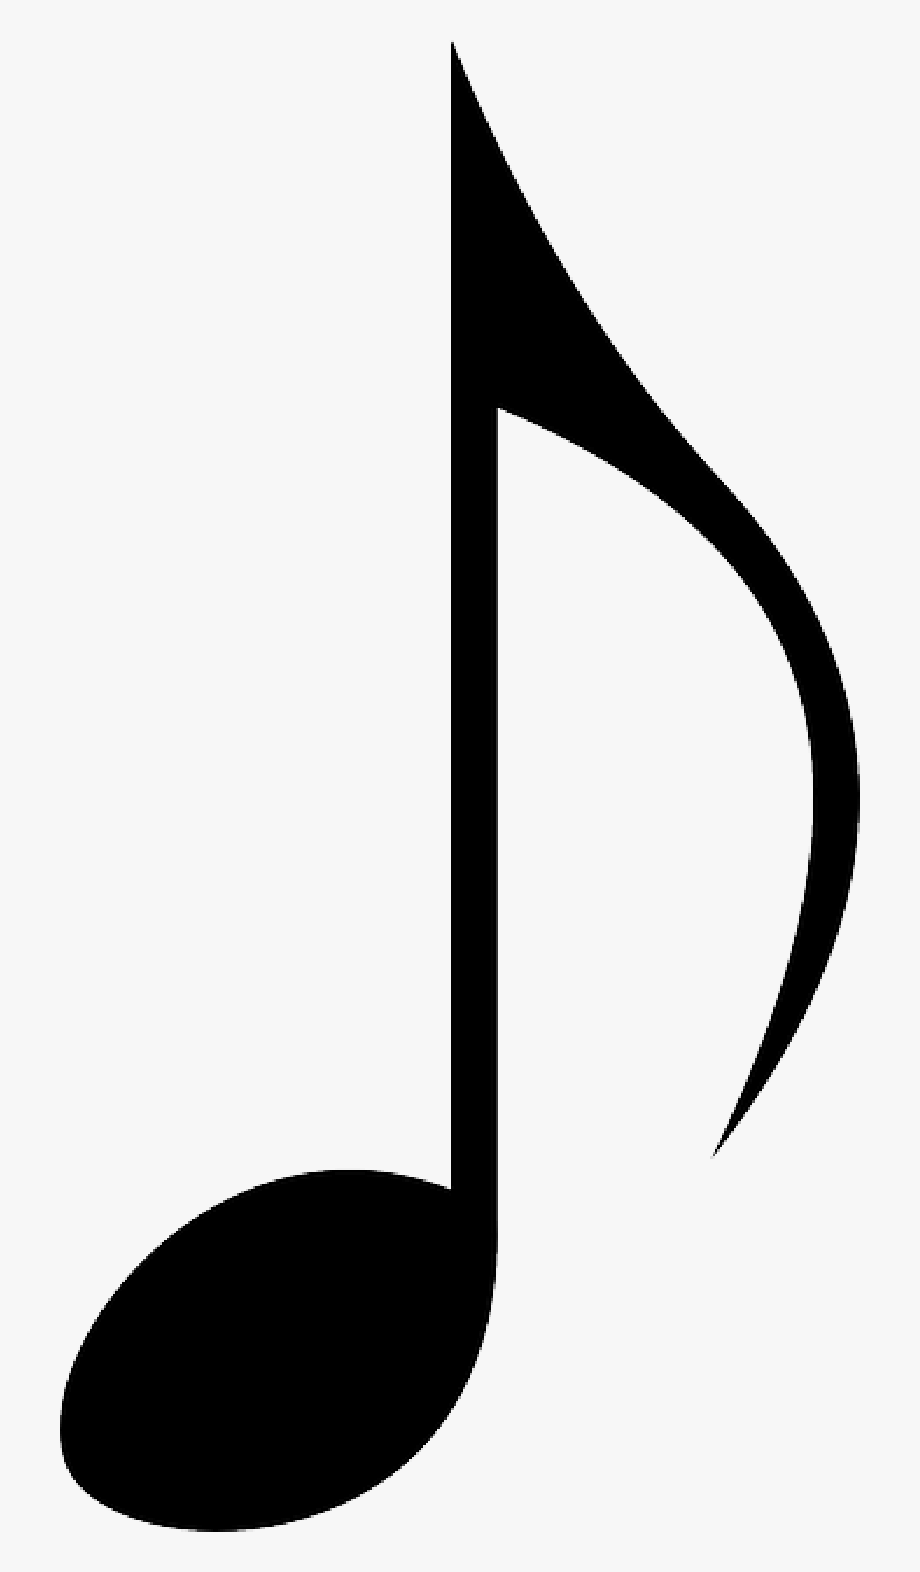 Music Notes Black And White Clipart Music Note.